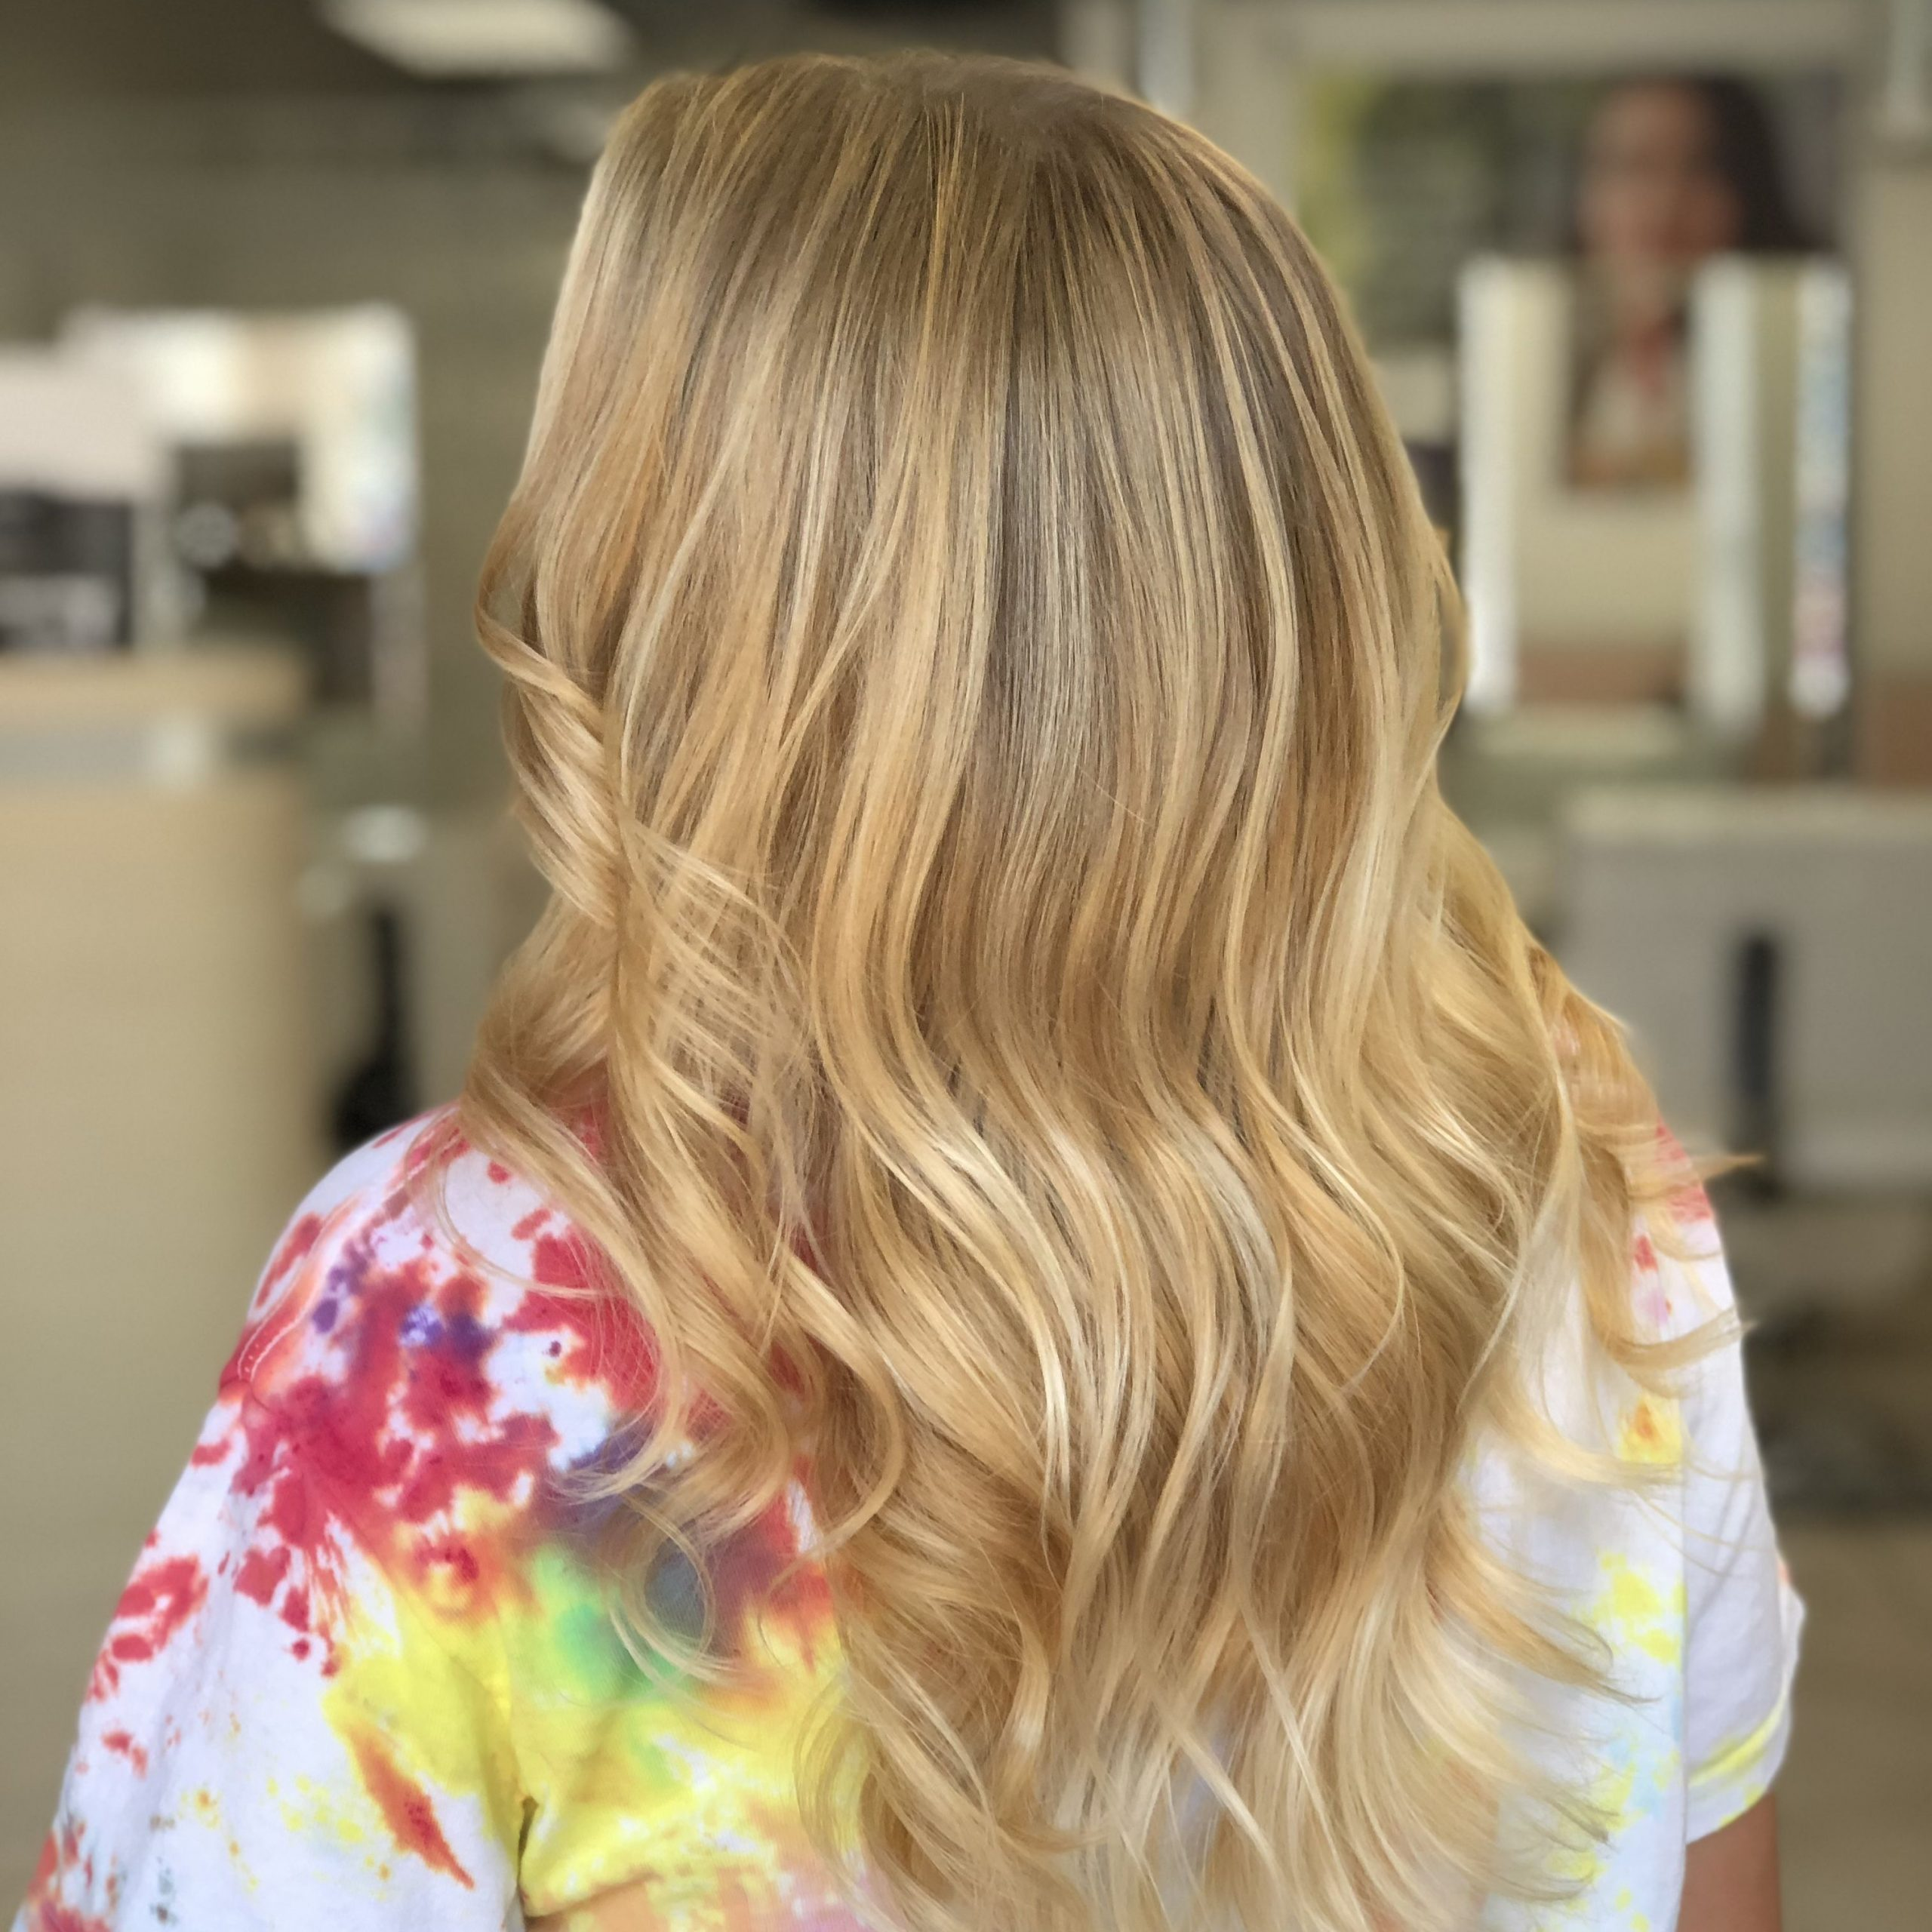 Current Golden Blonde Balayage On Long Curls Hairstyles With Regard To Beautiful Golden Blonde Balayage (View 18 of 20)